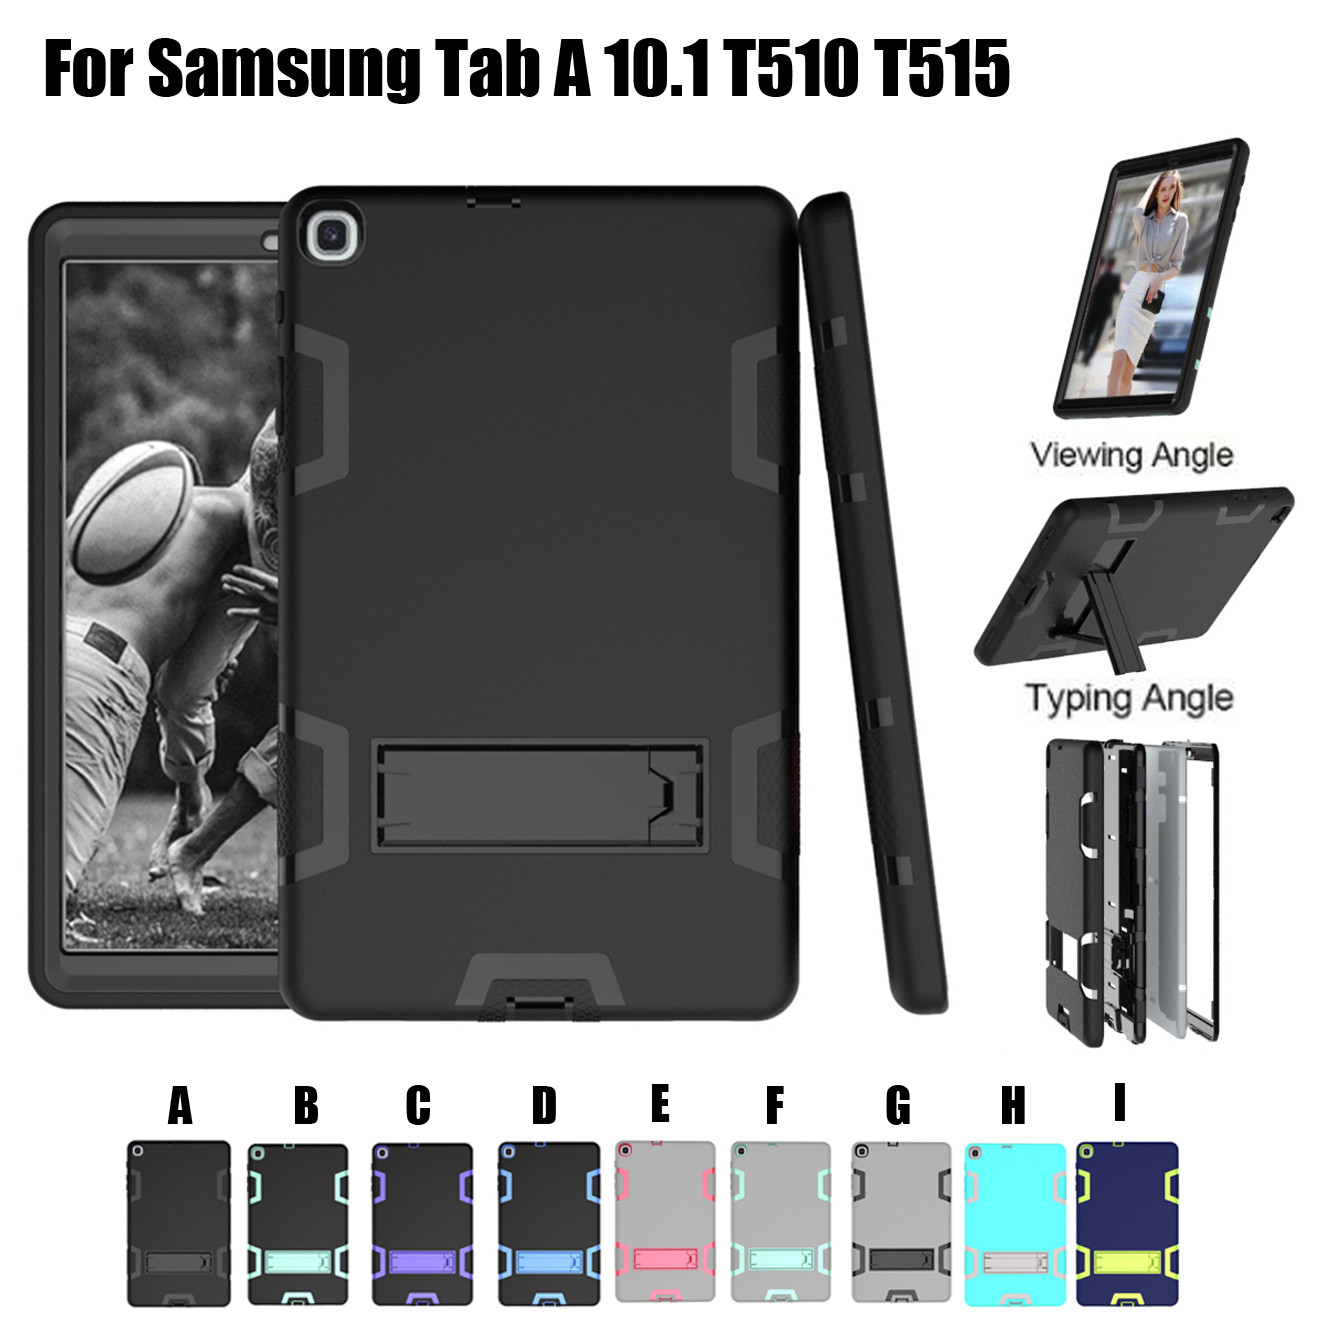 Tablet Case Cover Shock-Proof Hybrid Case For Samsung Galaxy Tab A 10.1 T510/T515 2019 Tablet Protective Cases Covers